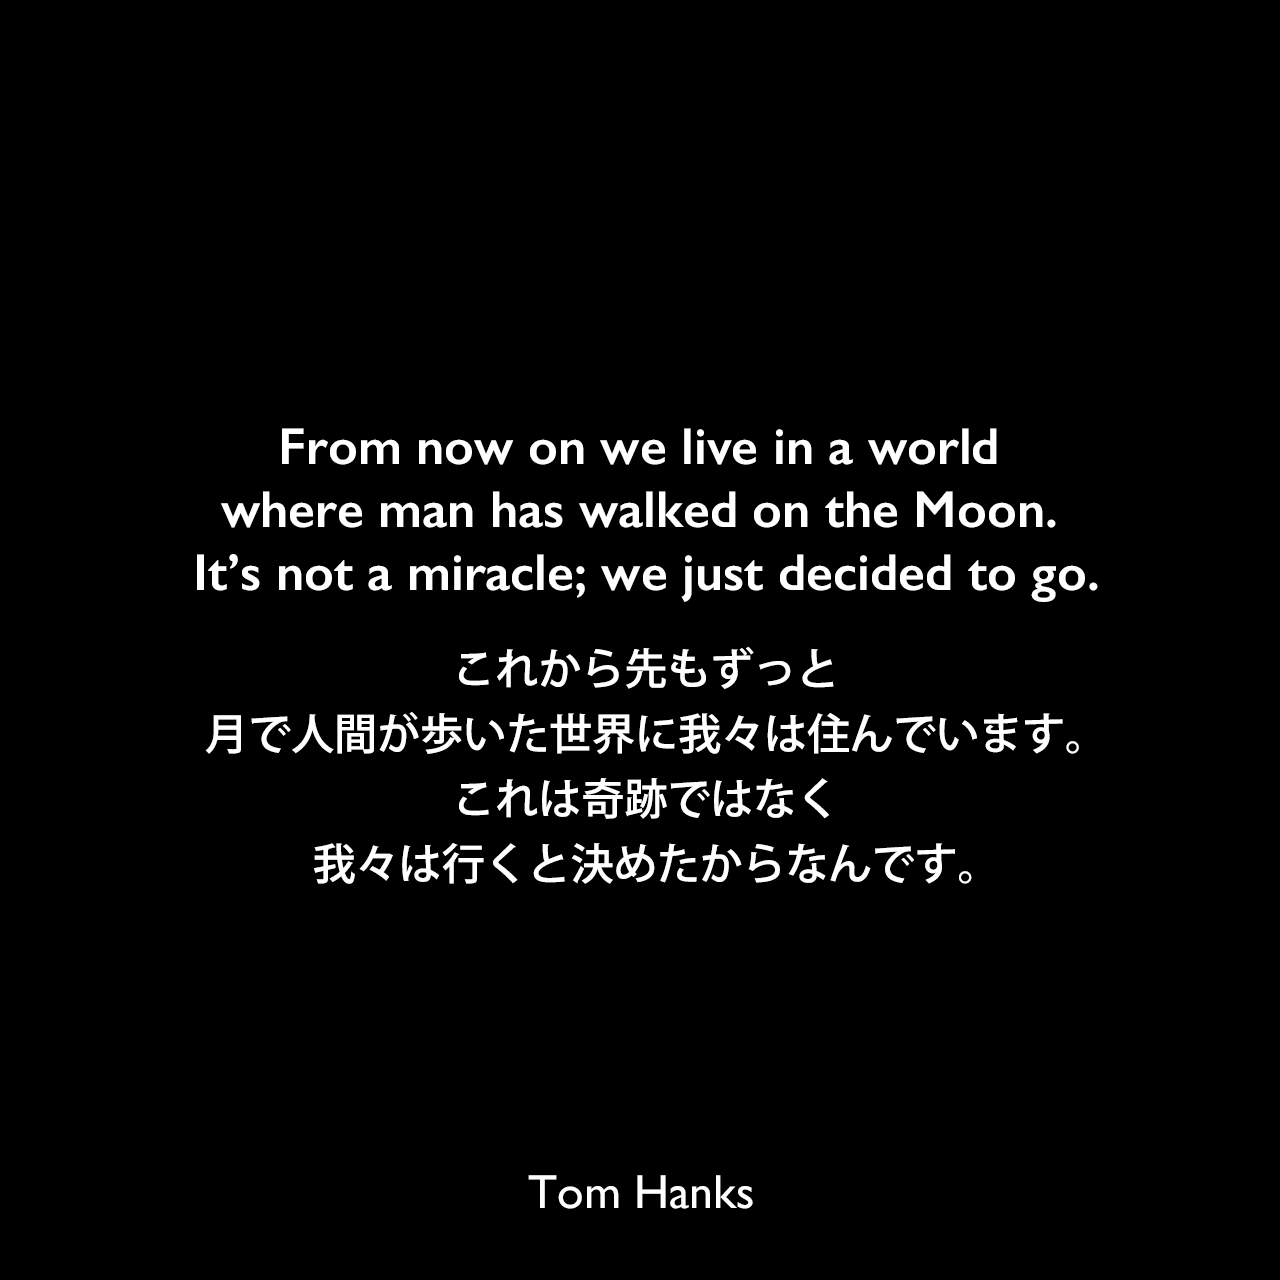 From now on we live in a world where man has walked on the Moon. It's not a miracle; we just decided to go.これから先もずっと、月で人間が歩いた世界に我々は住んでいます。これは奇跡ではなく、我々は行くと決めたからなんです。Tom Hanks